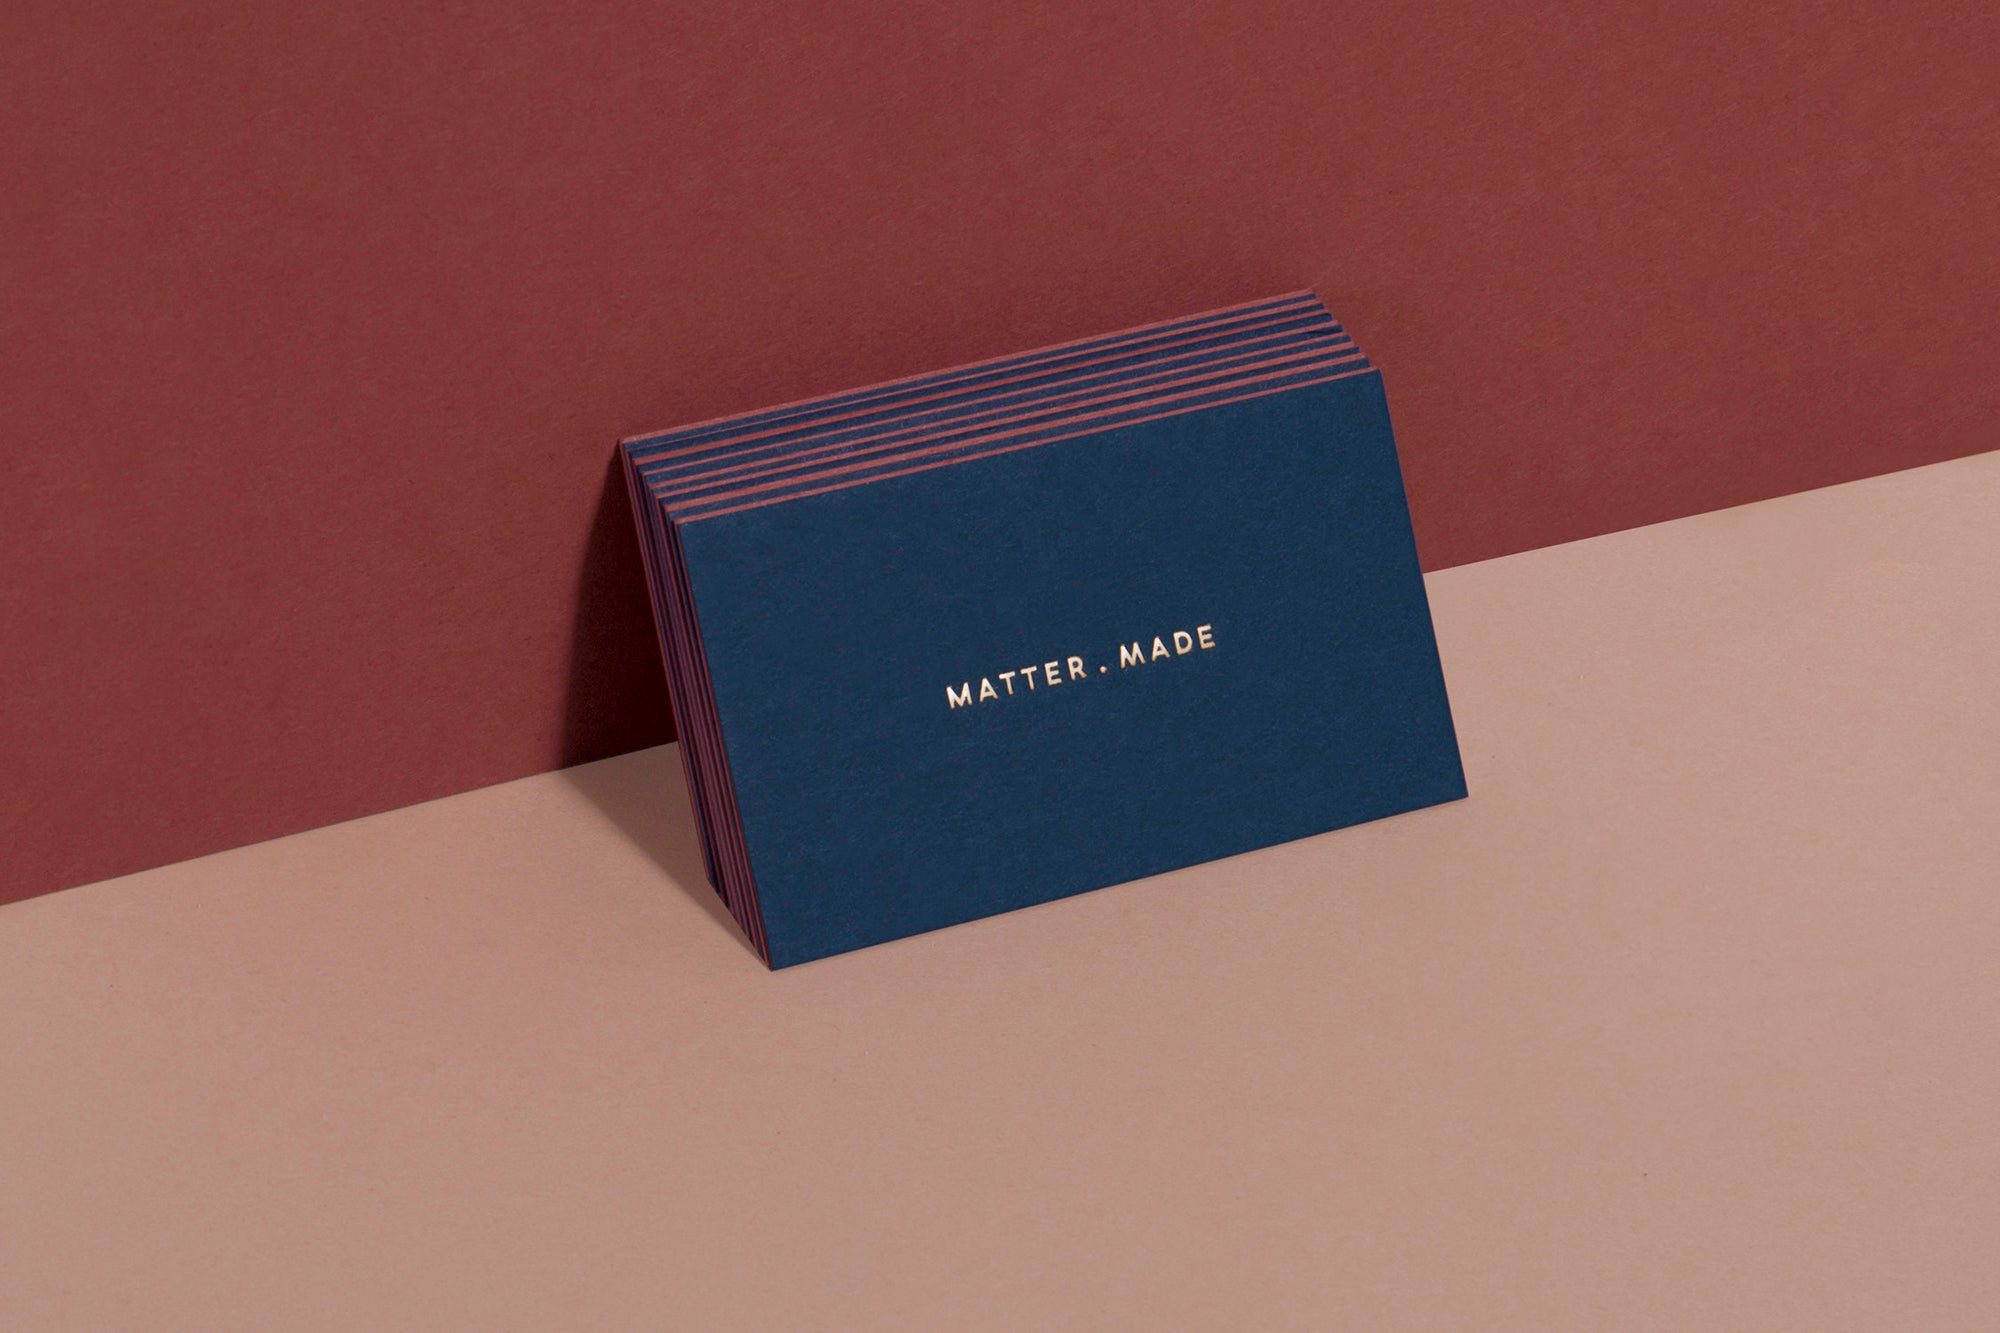 Lotta Nieminen: Matter Made